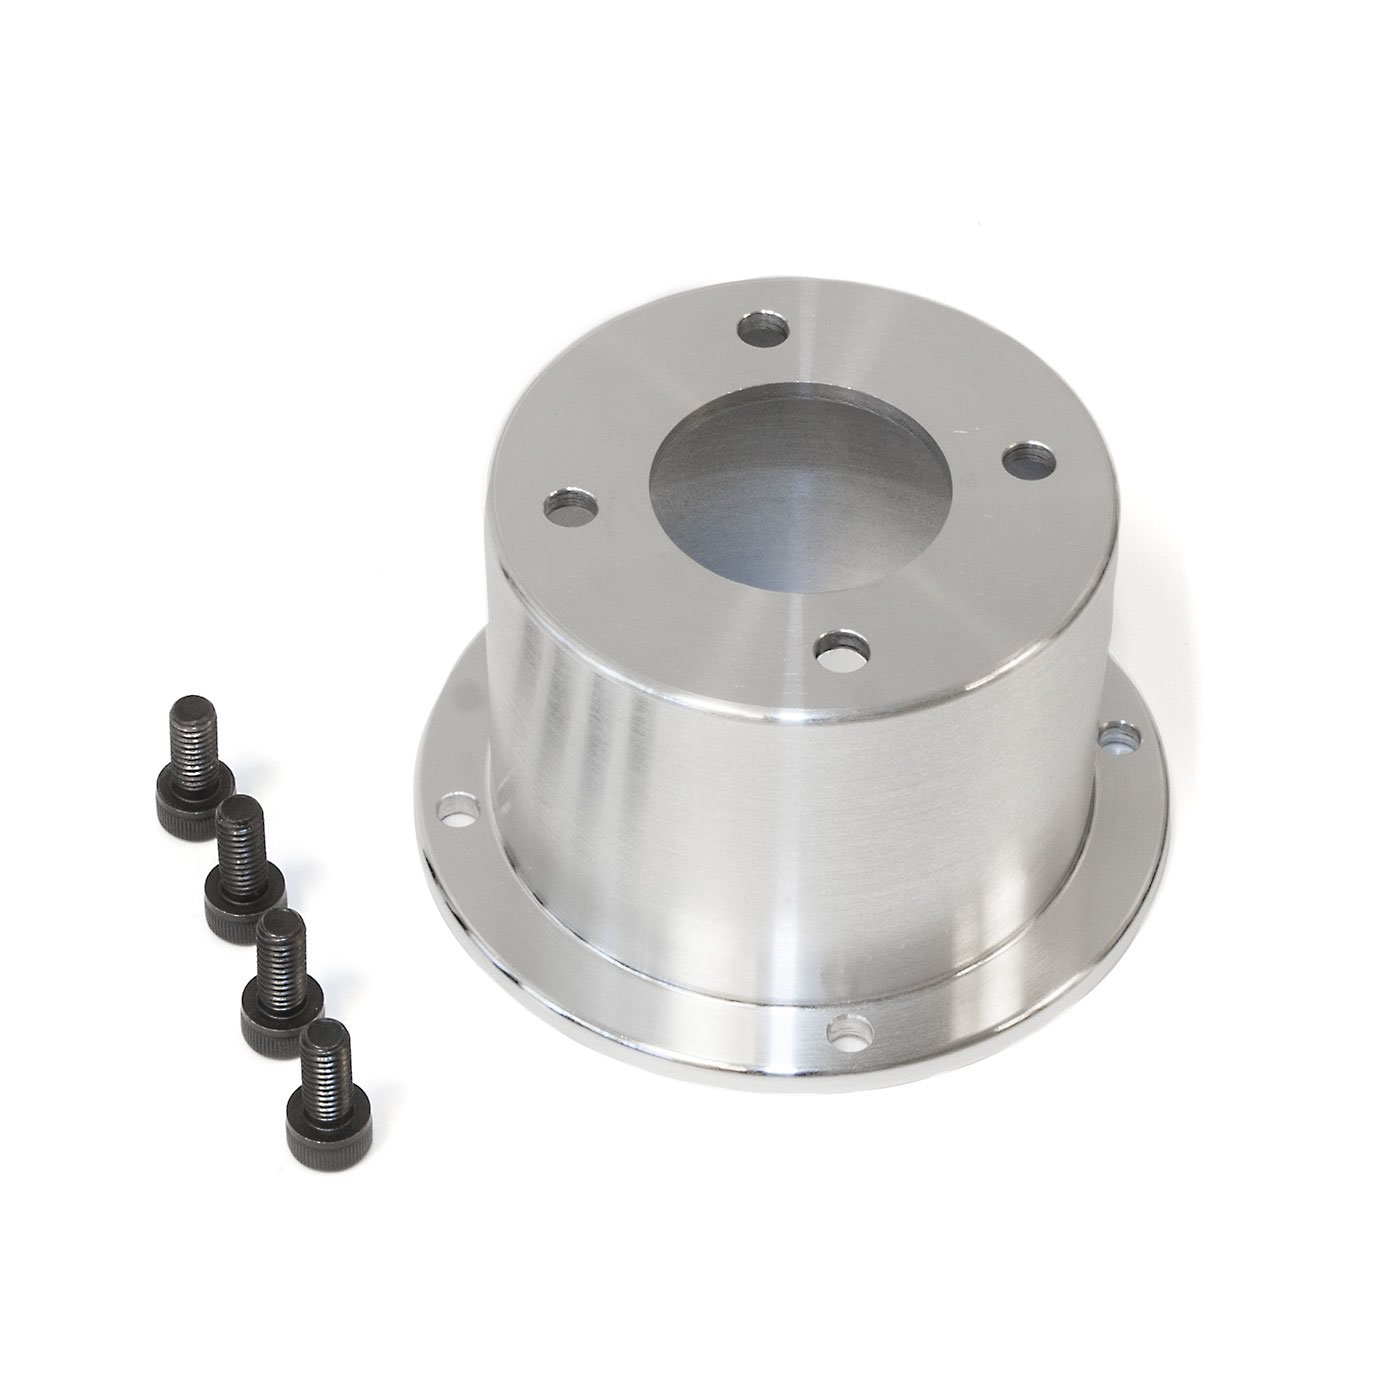 Motor Mount for TITAN ZG45 and ZG62, length 36 mm